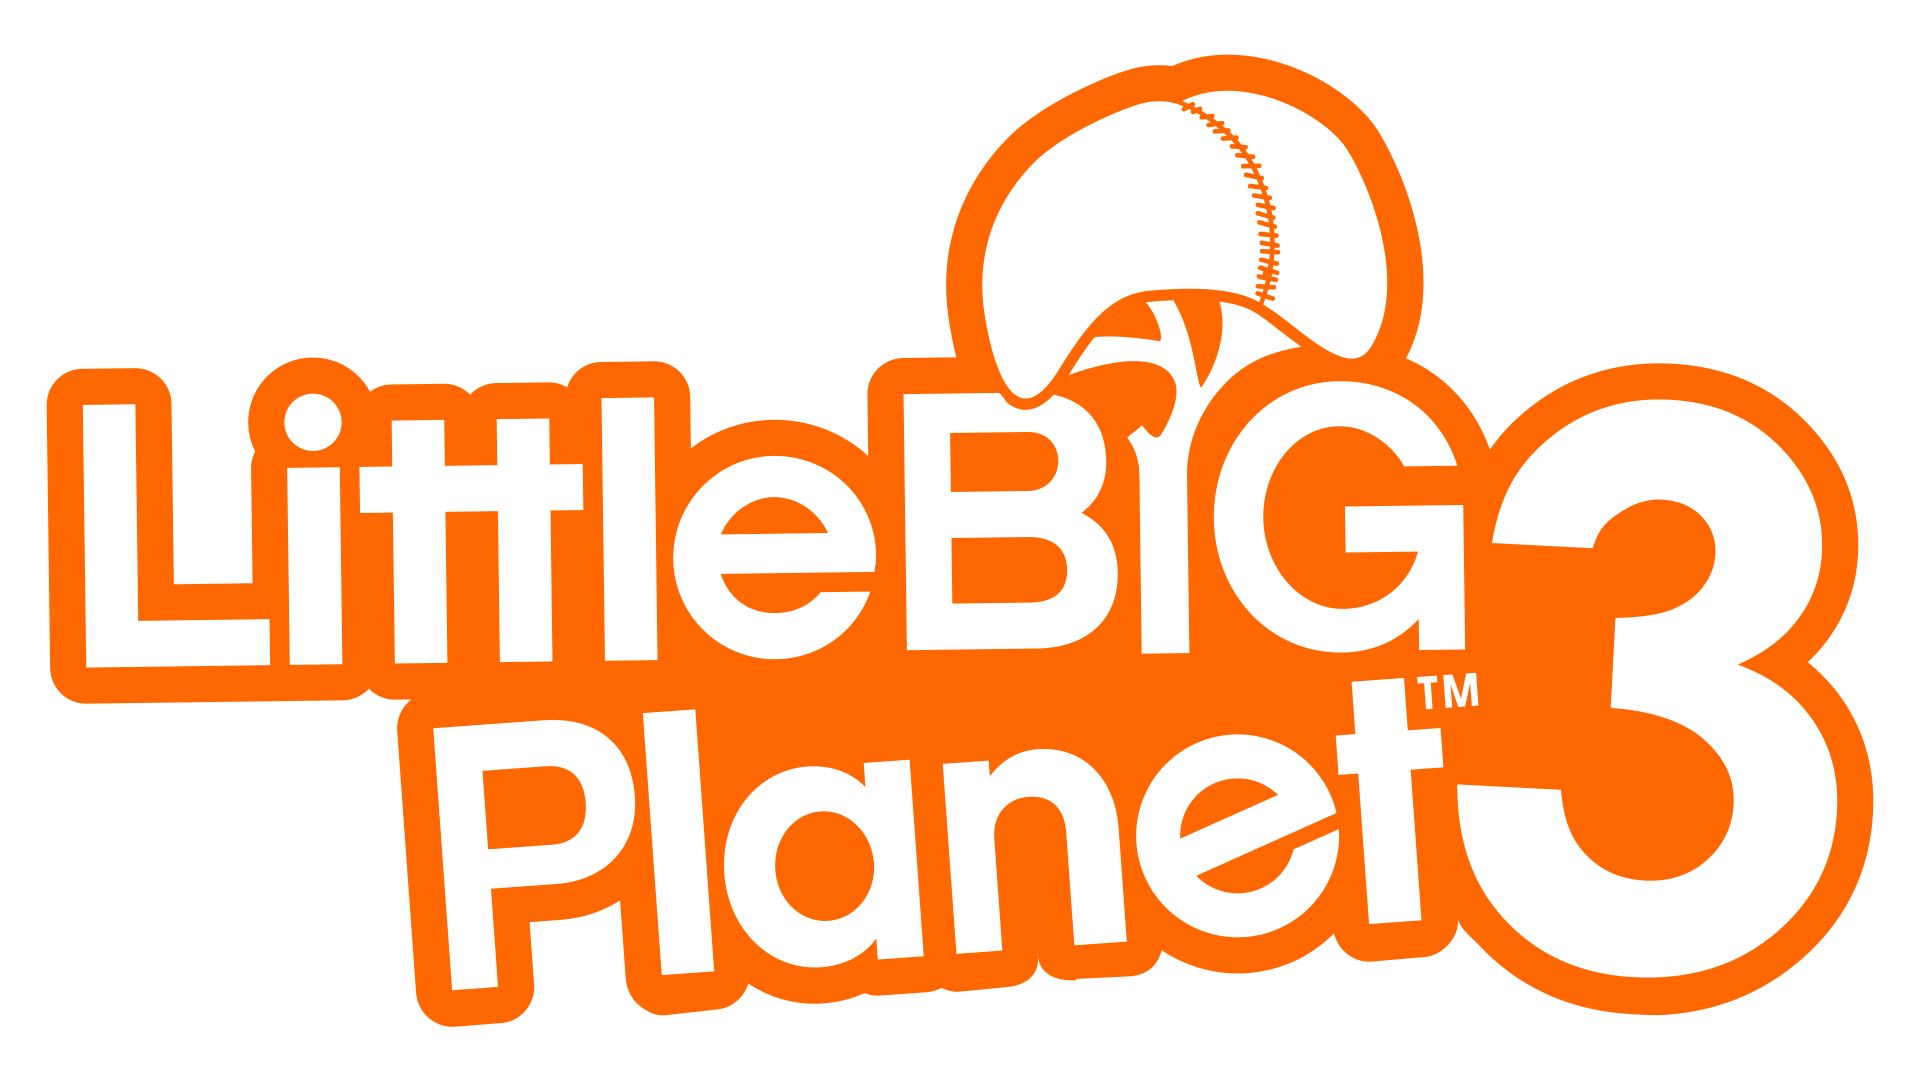 Little big planet 3 png. Image logo lbp littlebigplanet